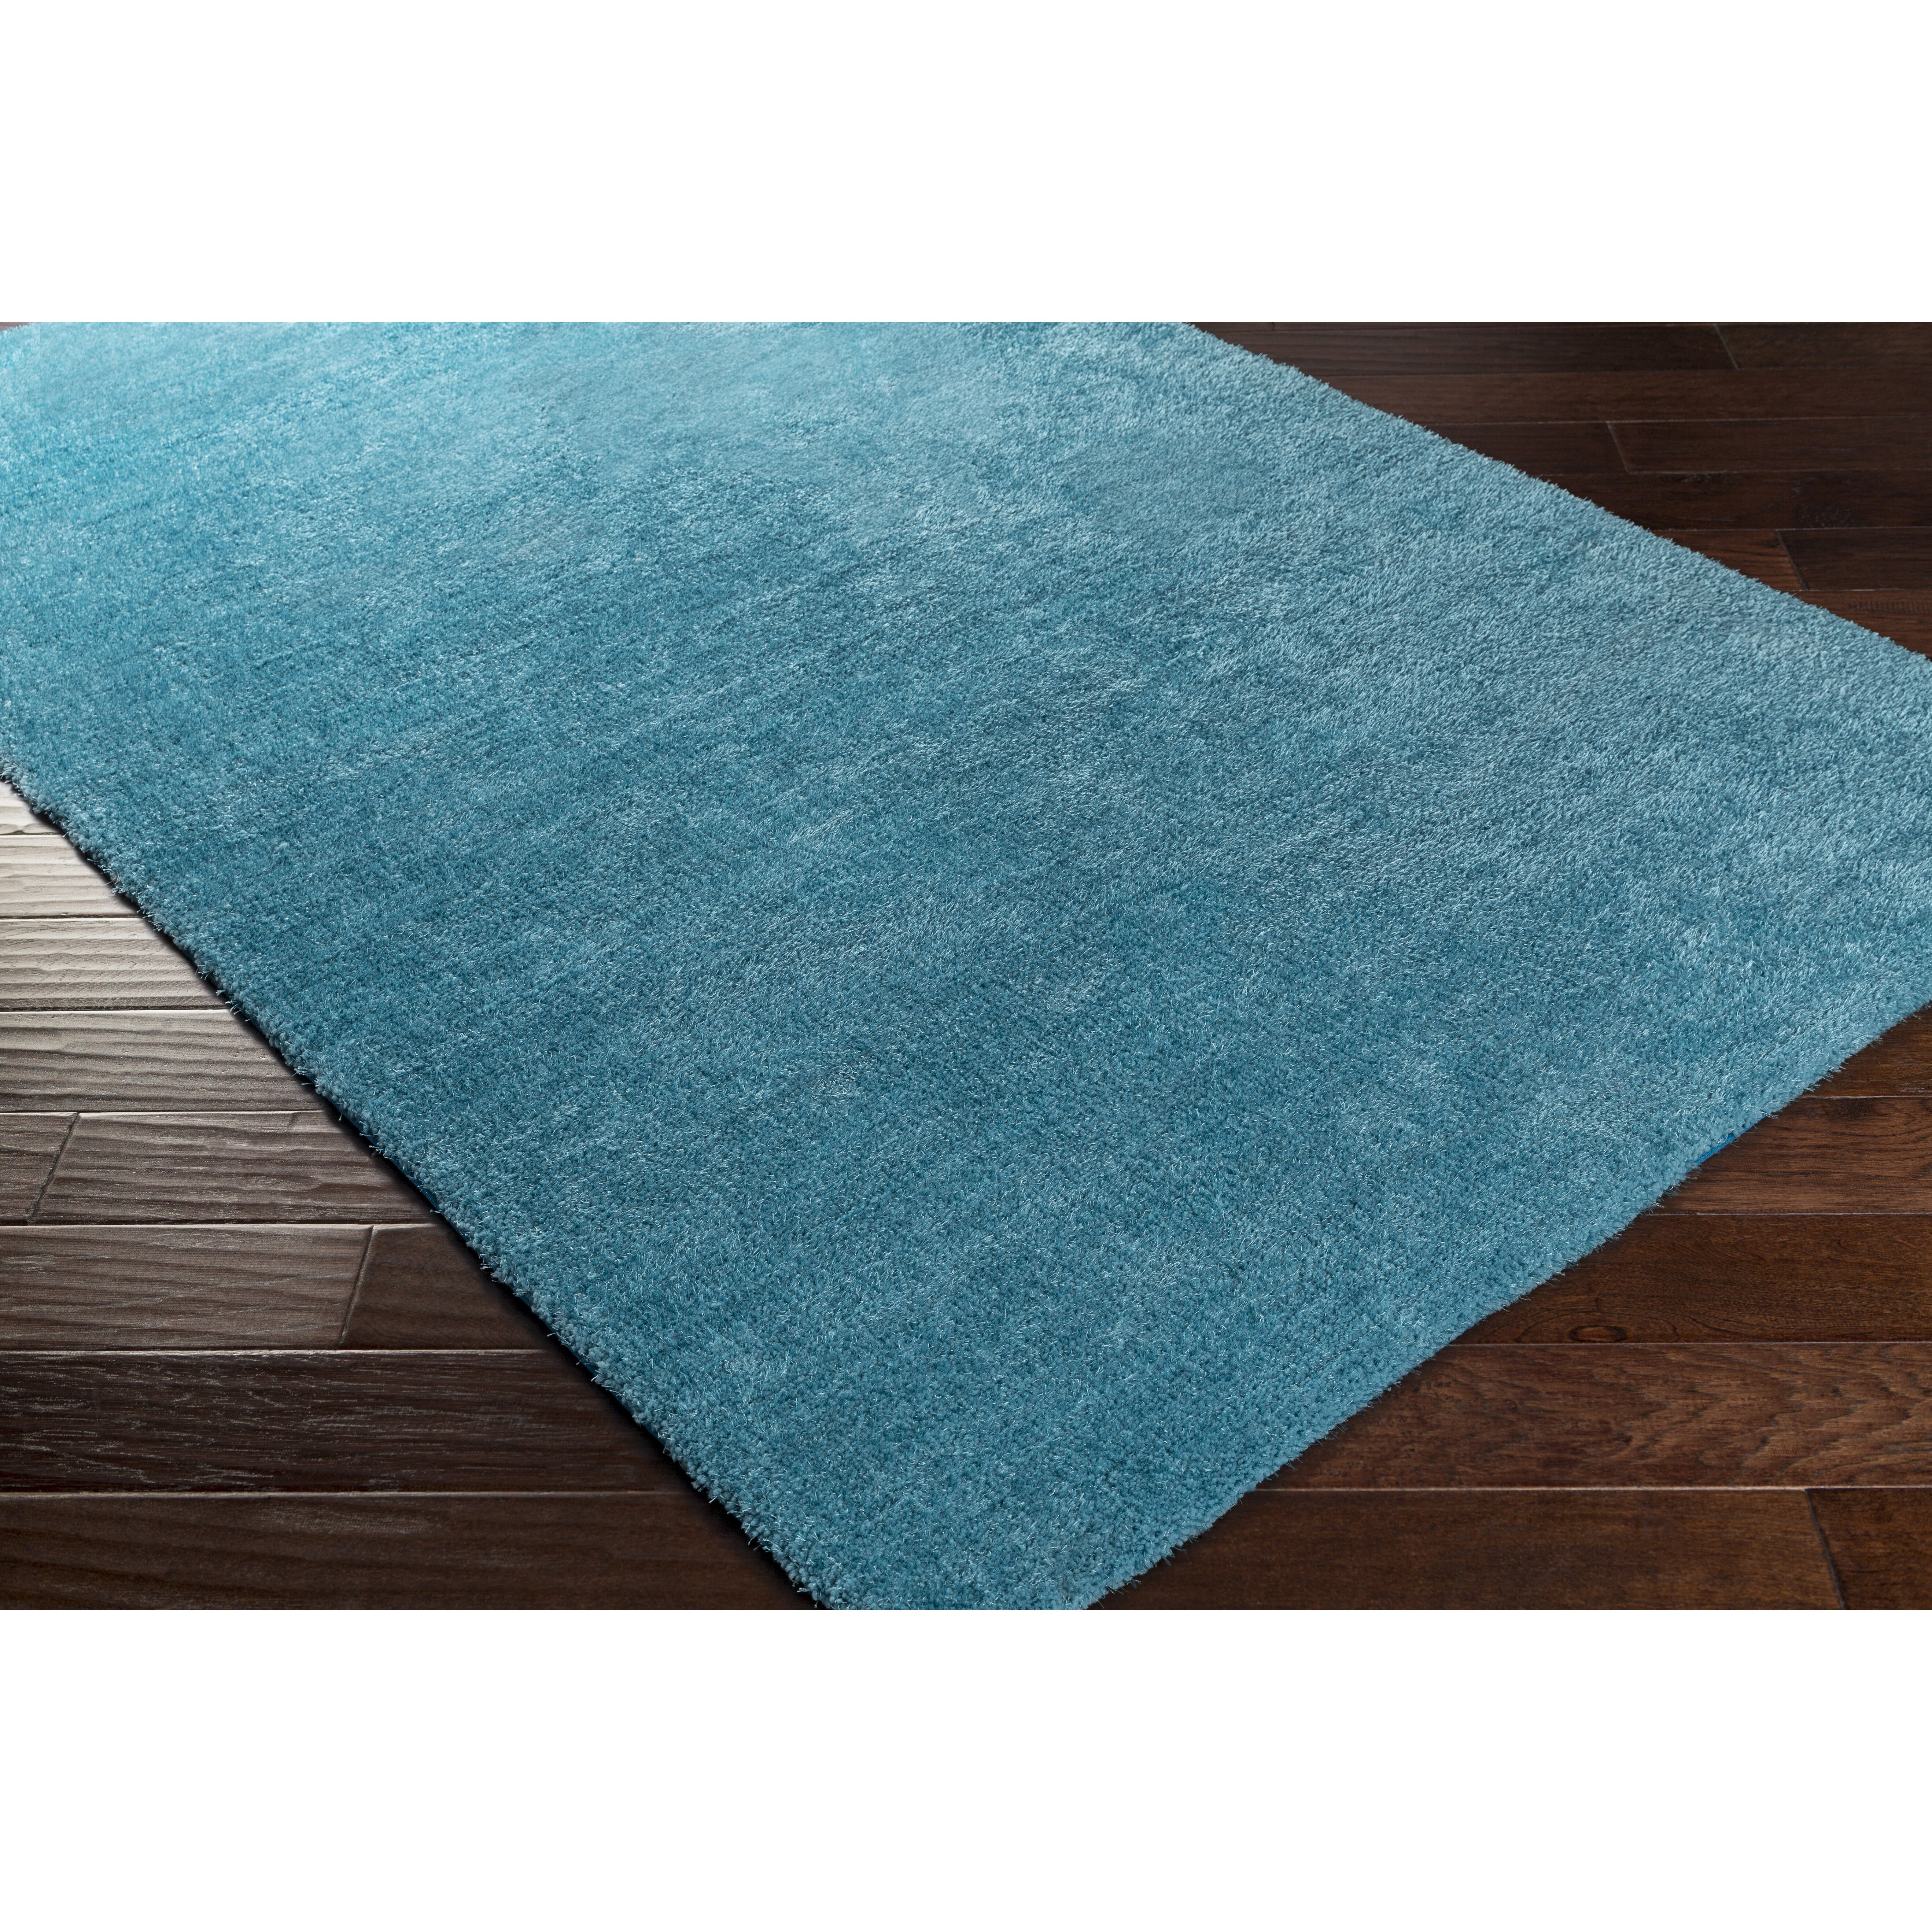 Artistic Weavers Arnold Gabriel Turquoise Area Rug